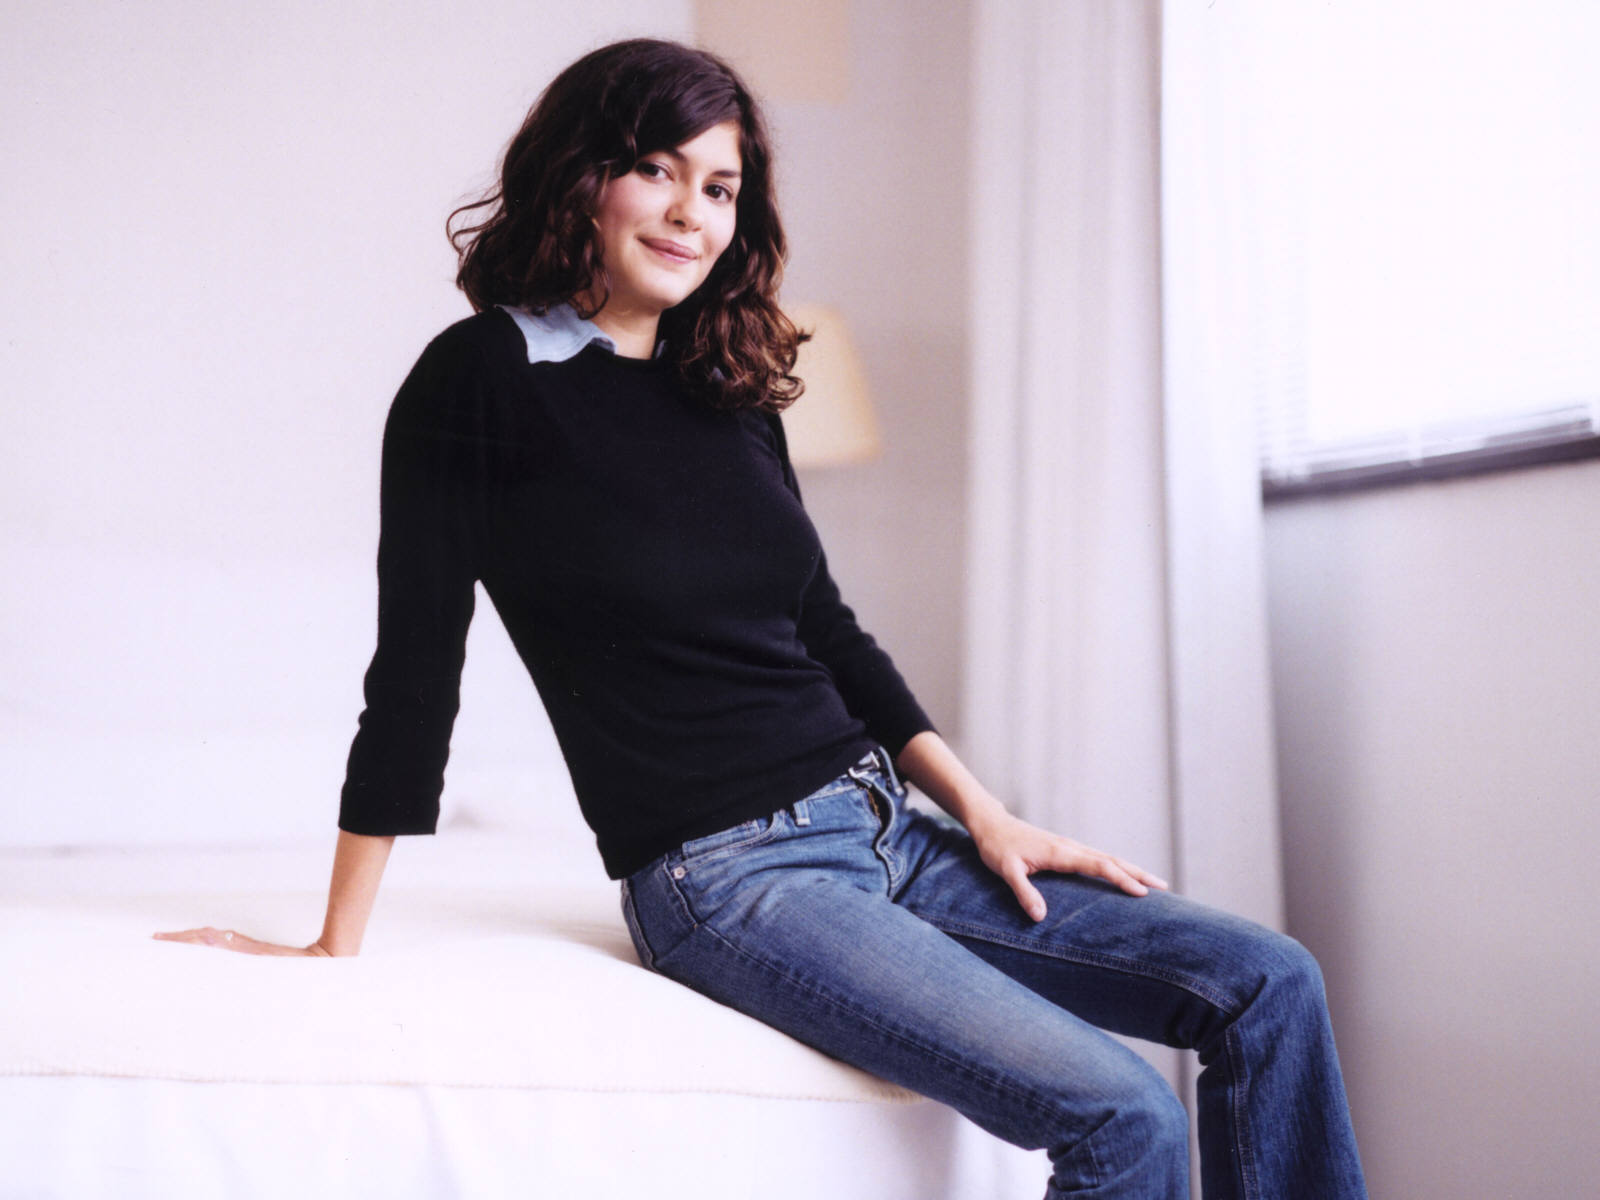 Cute Ashanti Wallpaper Audrey Tautou Hot Pictures Photo Gallery Amp Wallpapers